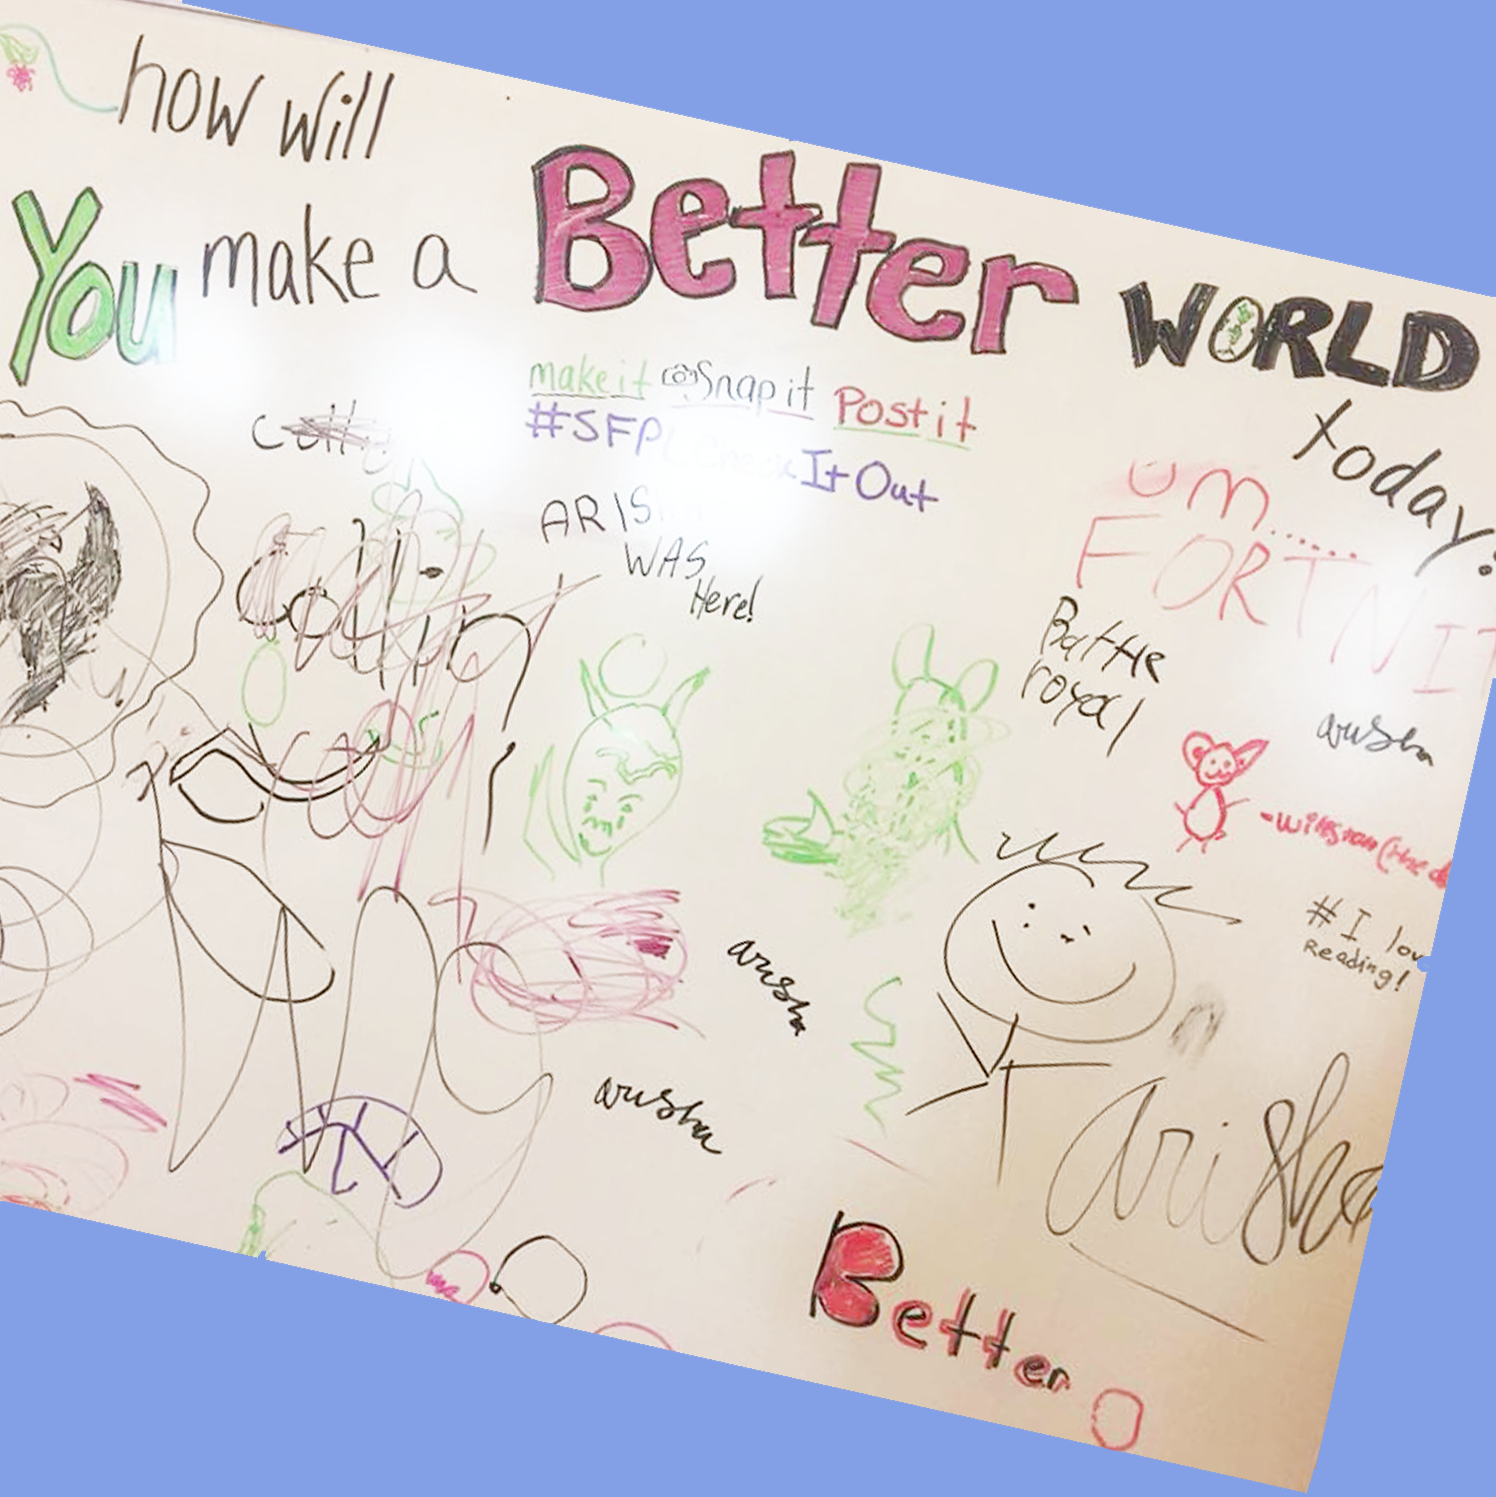 How will you make a better world whiteboard prompt.